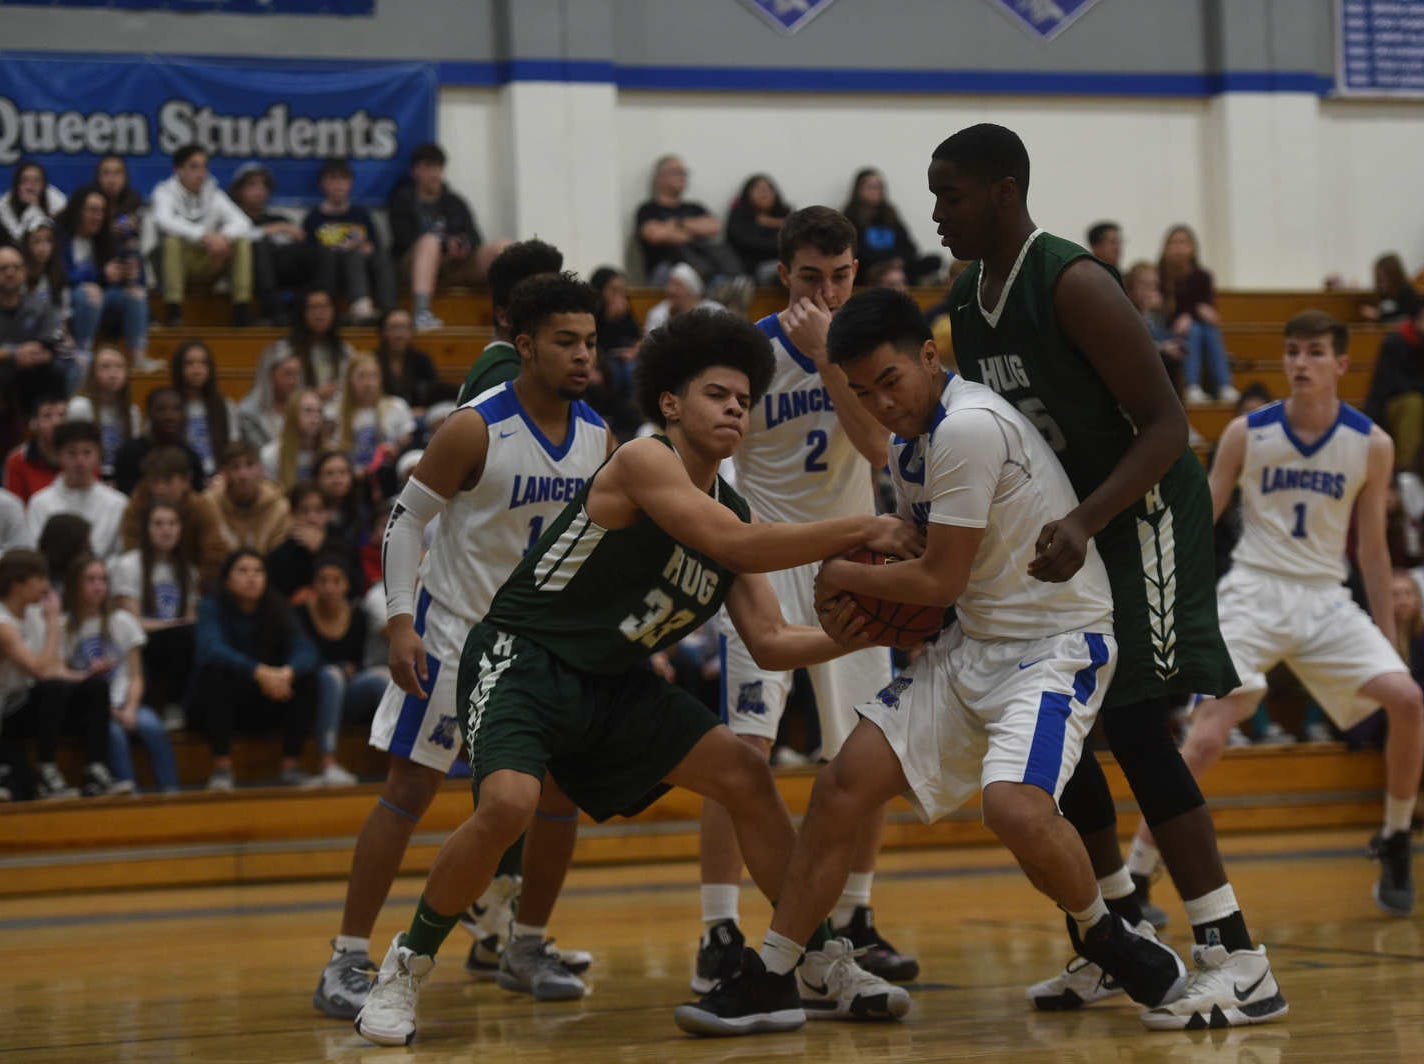 Hug takes on McQueen during their basketball game at McQueen on Jan. 25, 2019.